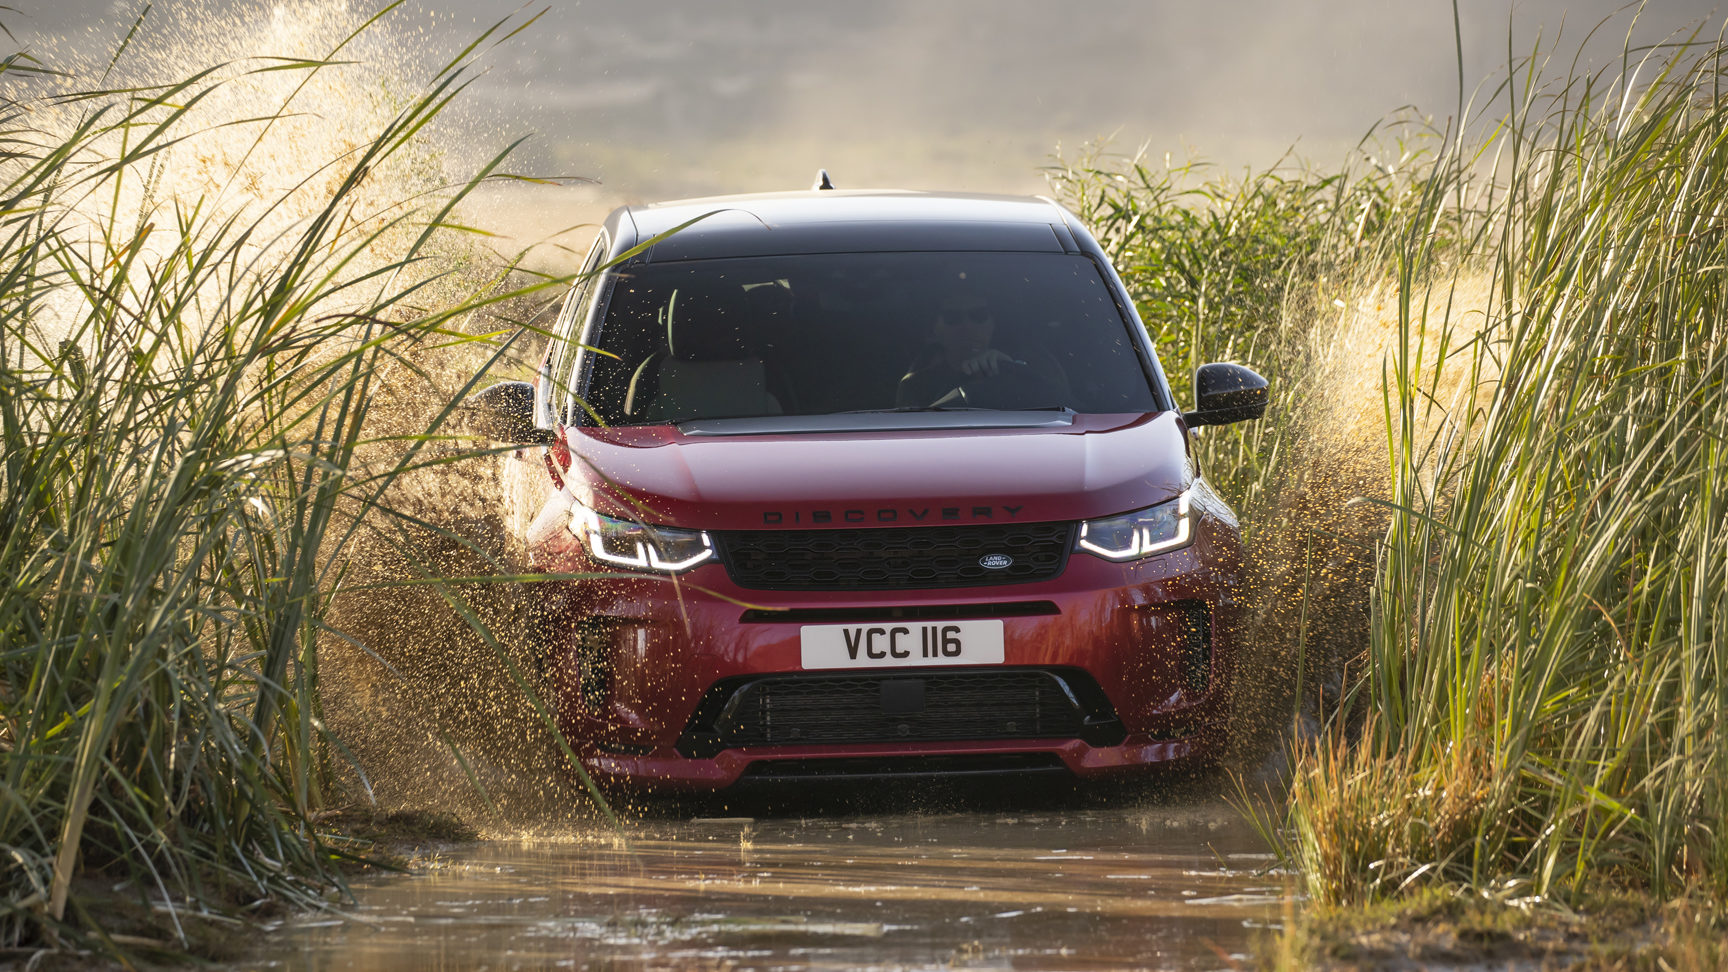 2020 Land Rover Discovery Sport First Drive Review: It's Better | Automobile Magazine